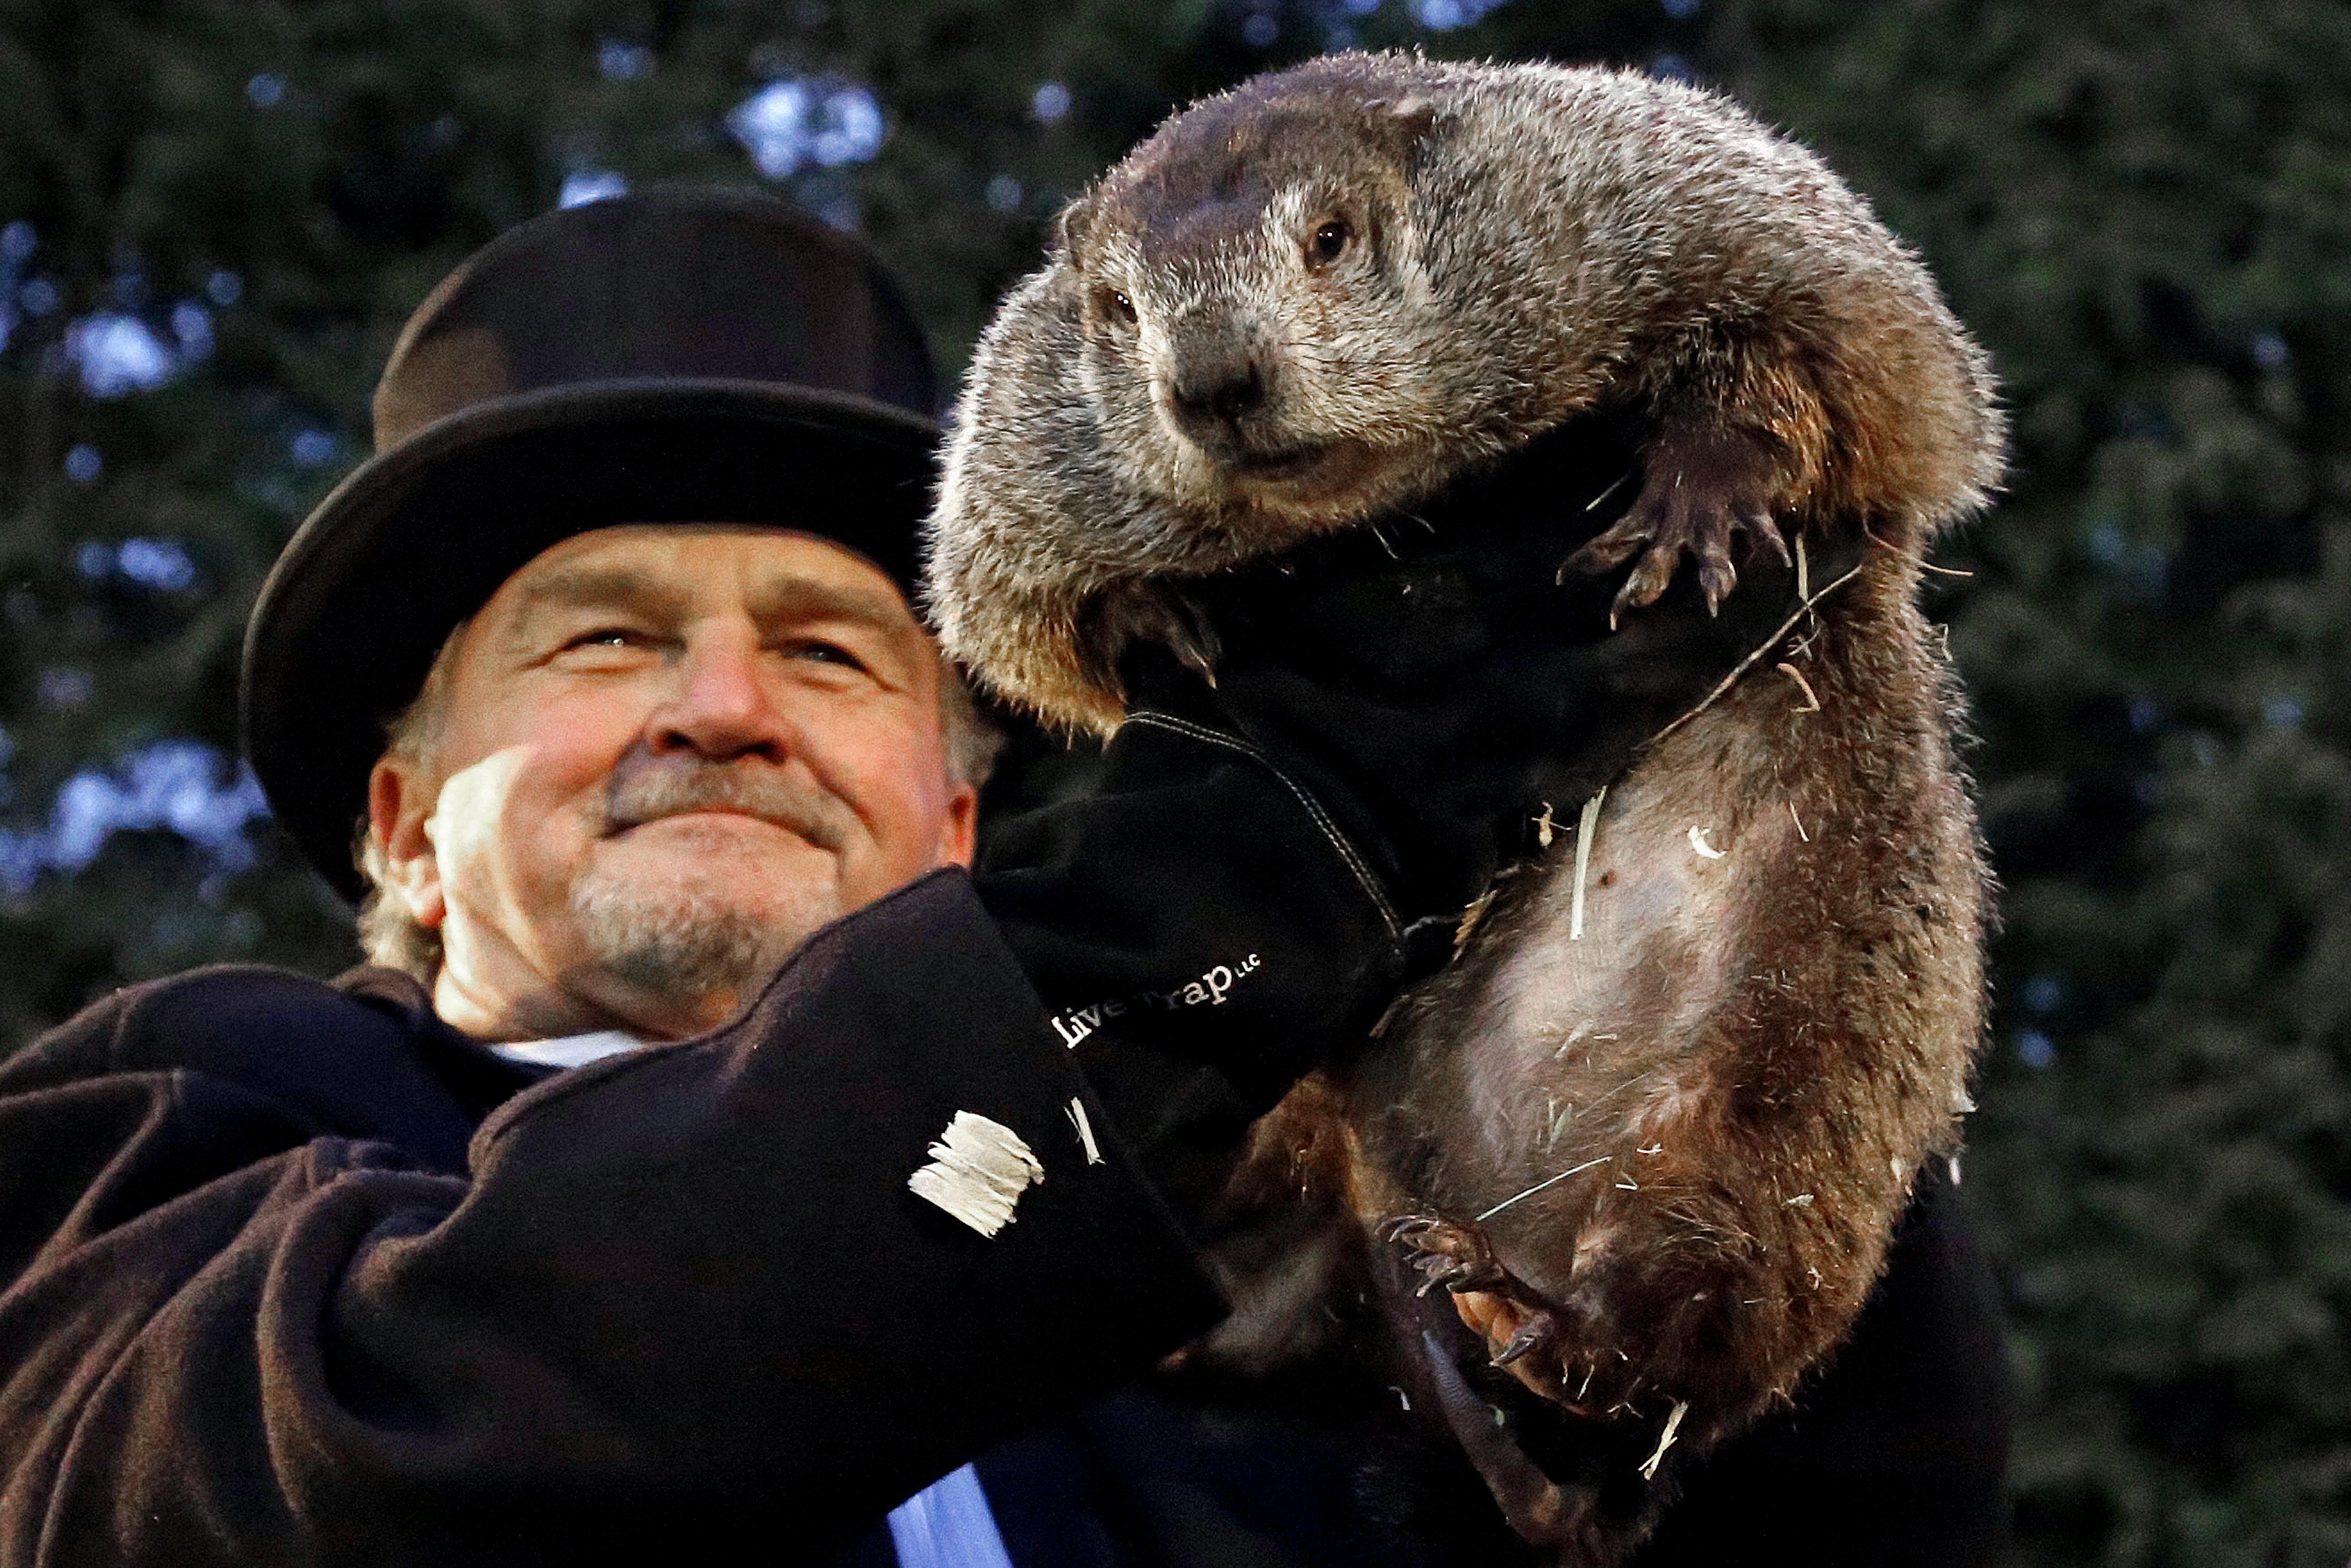 Groundhog Club handler John Griffiths holds Punxsutawney Phil, the weather prognosticating groundhog, during the 131st celebration of Groundhog Day on Gobbler's Knob in Punxsutawney, Pa. Thursday, Feb. 2, 2017. Phil's handlers said that the groundhog has forecast six more weeks of winter weather. Gene J. Puskar, The Associated Press